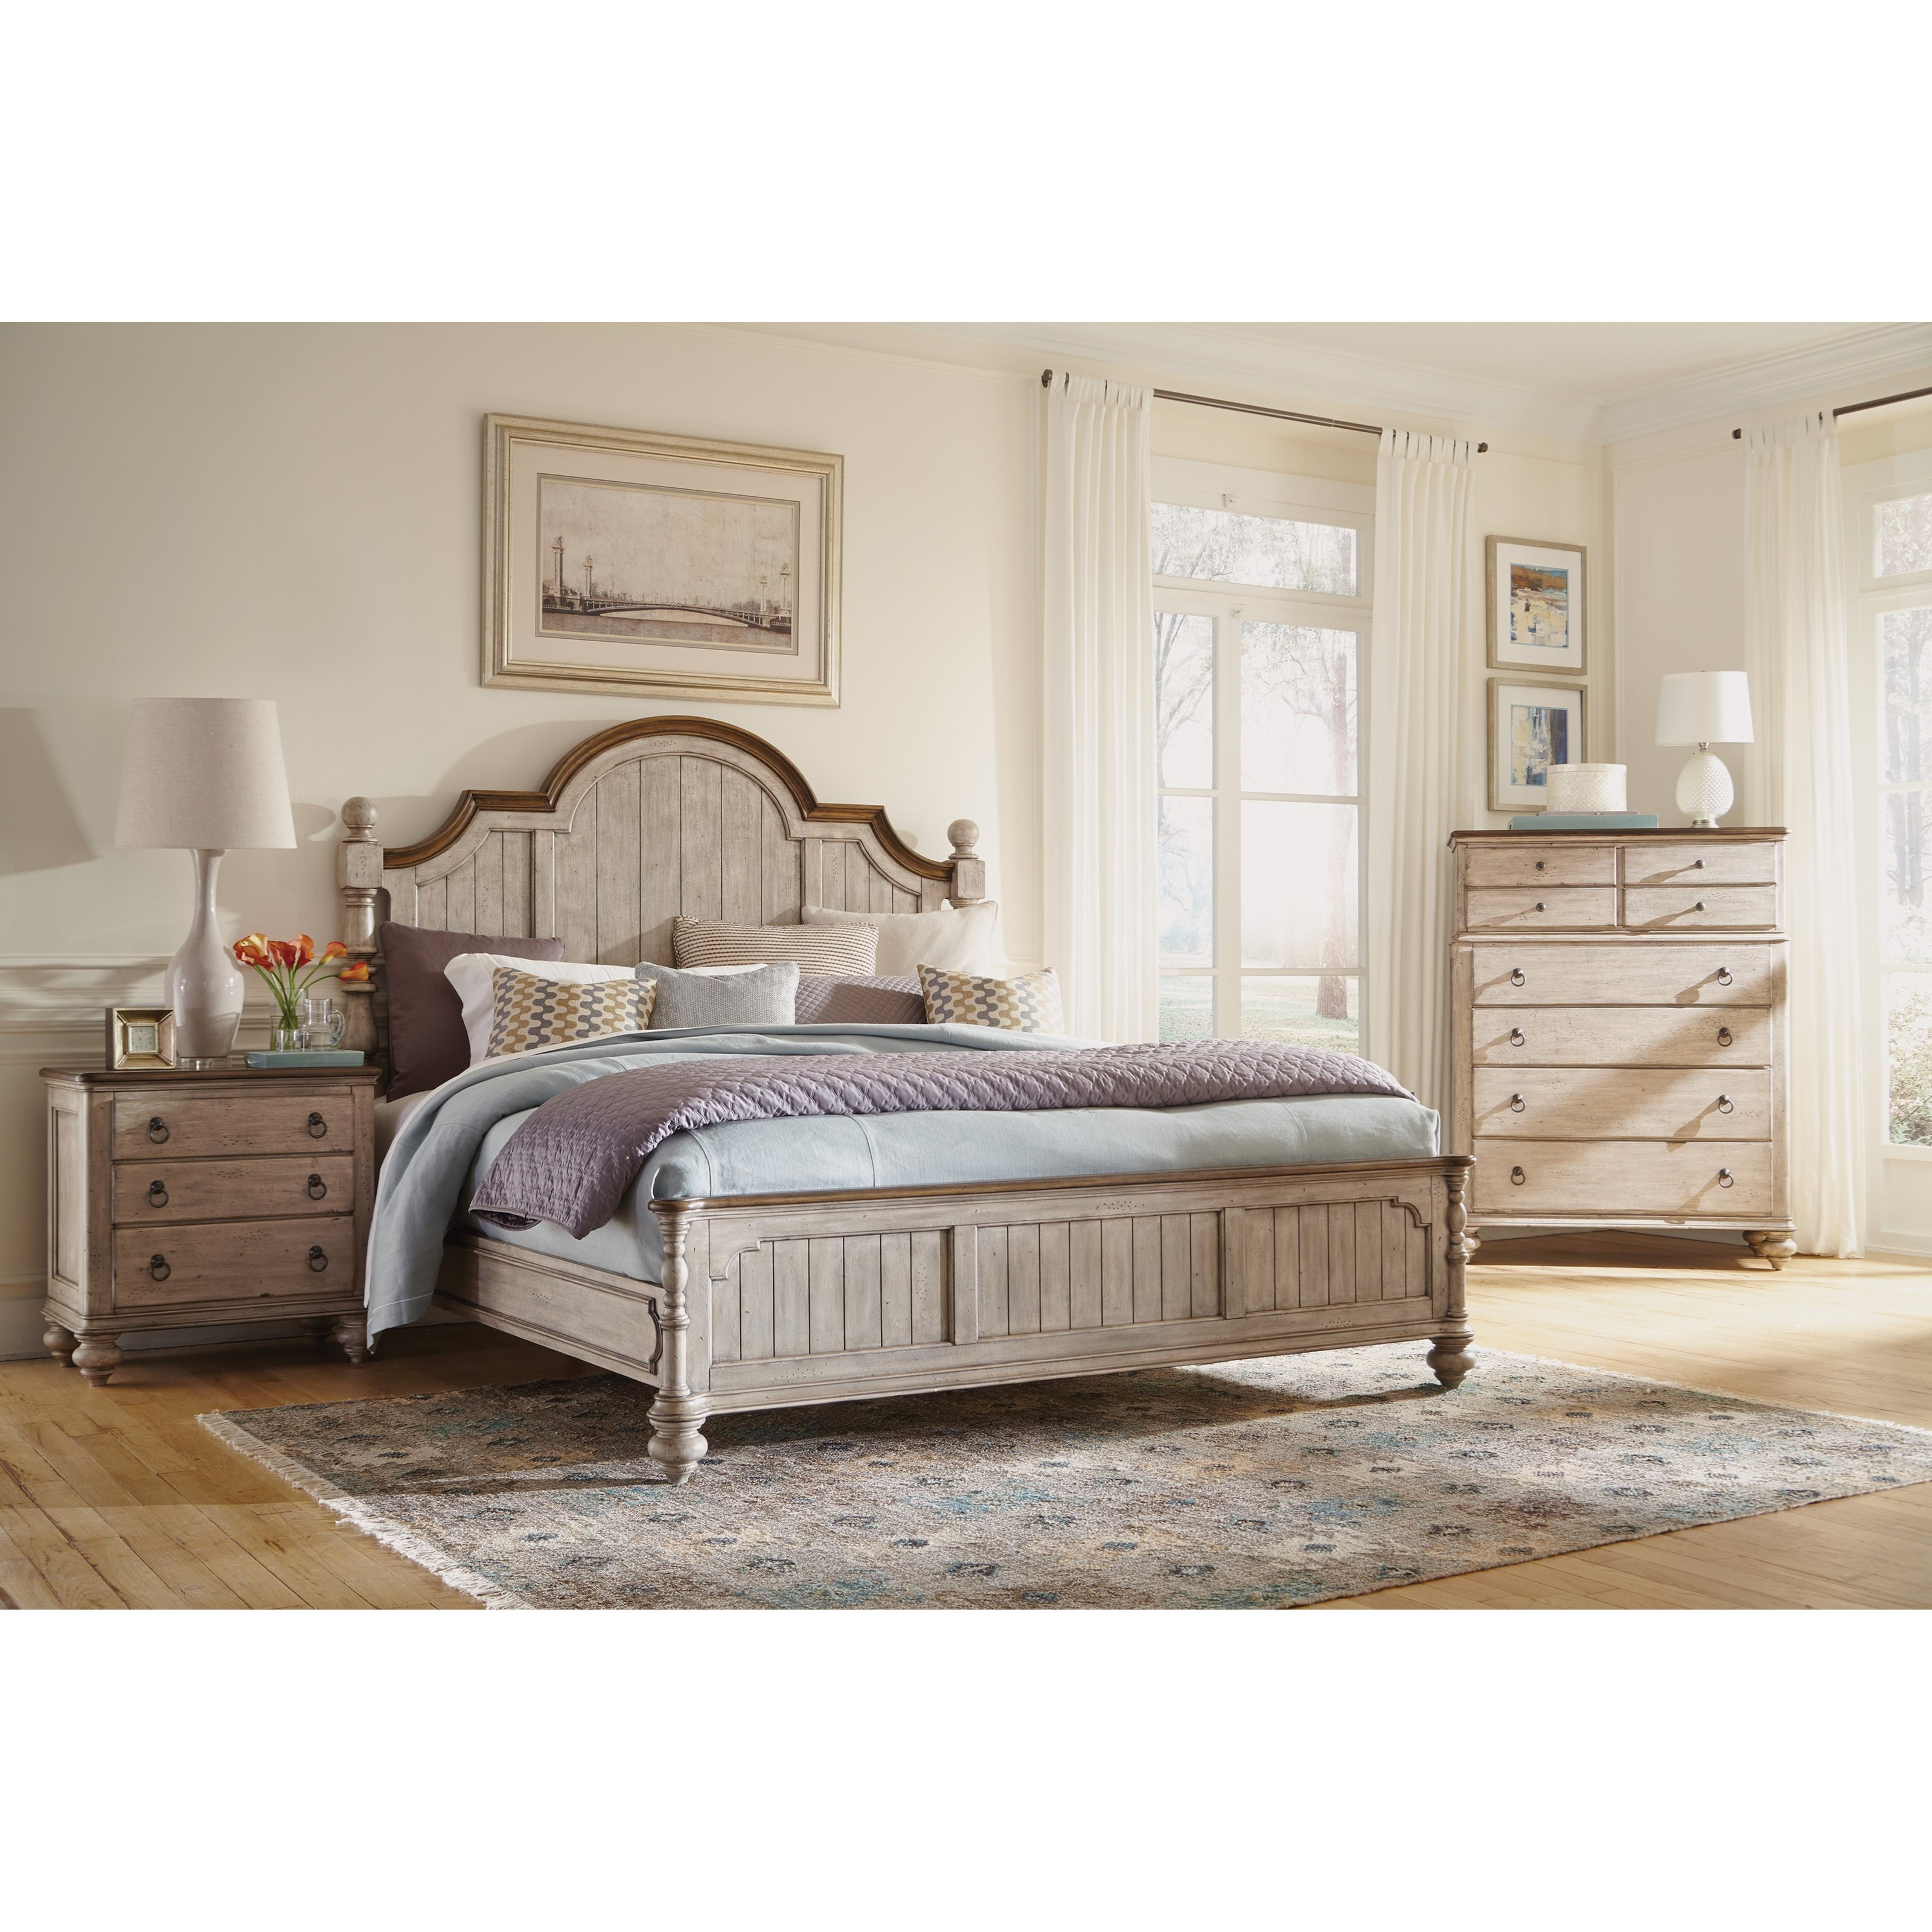 Plymouth King Bedroom Group by Flexsteel Wynwood Collection at Godby Home Furnishings